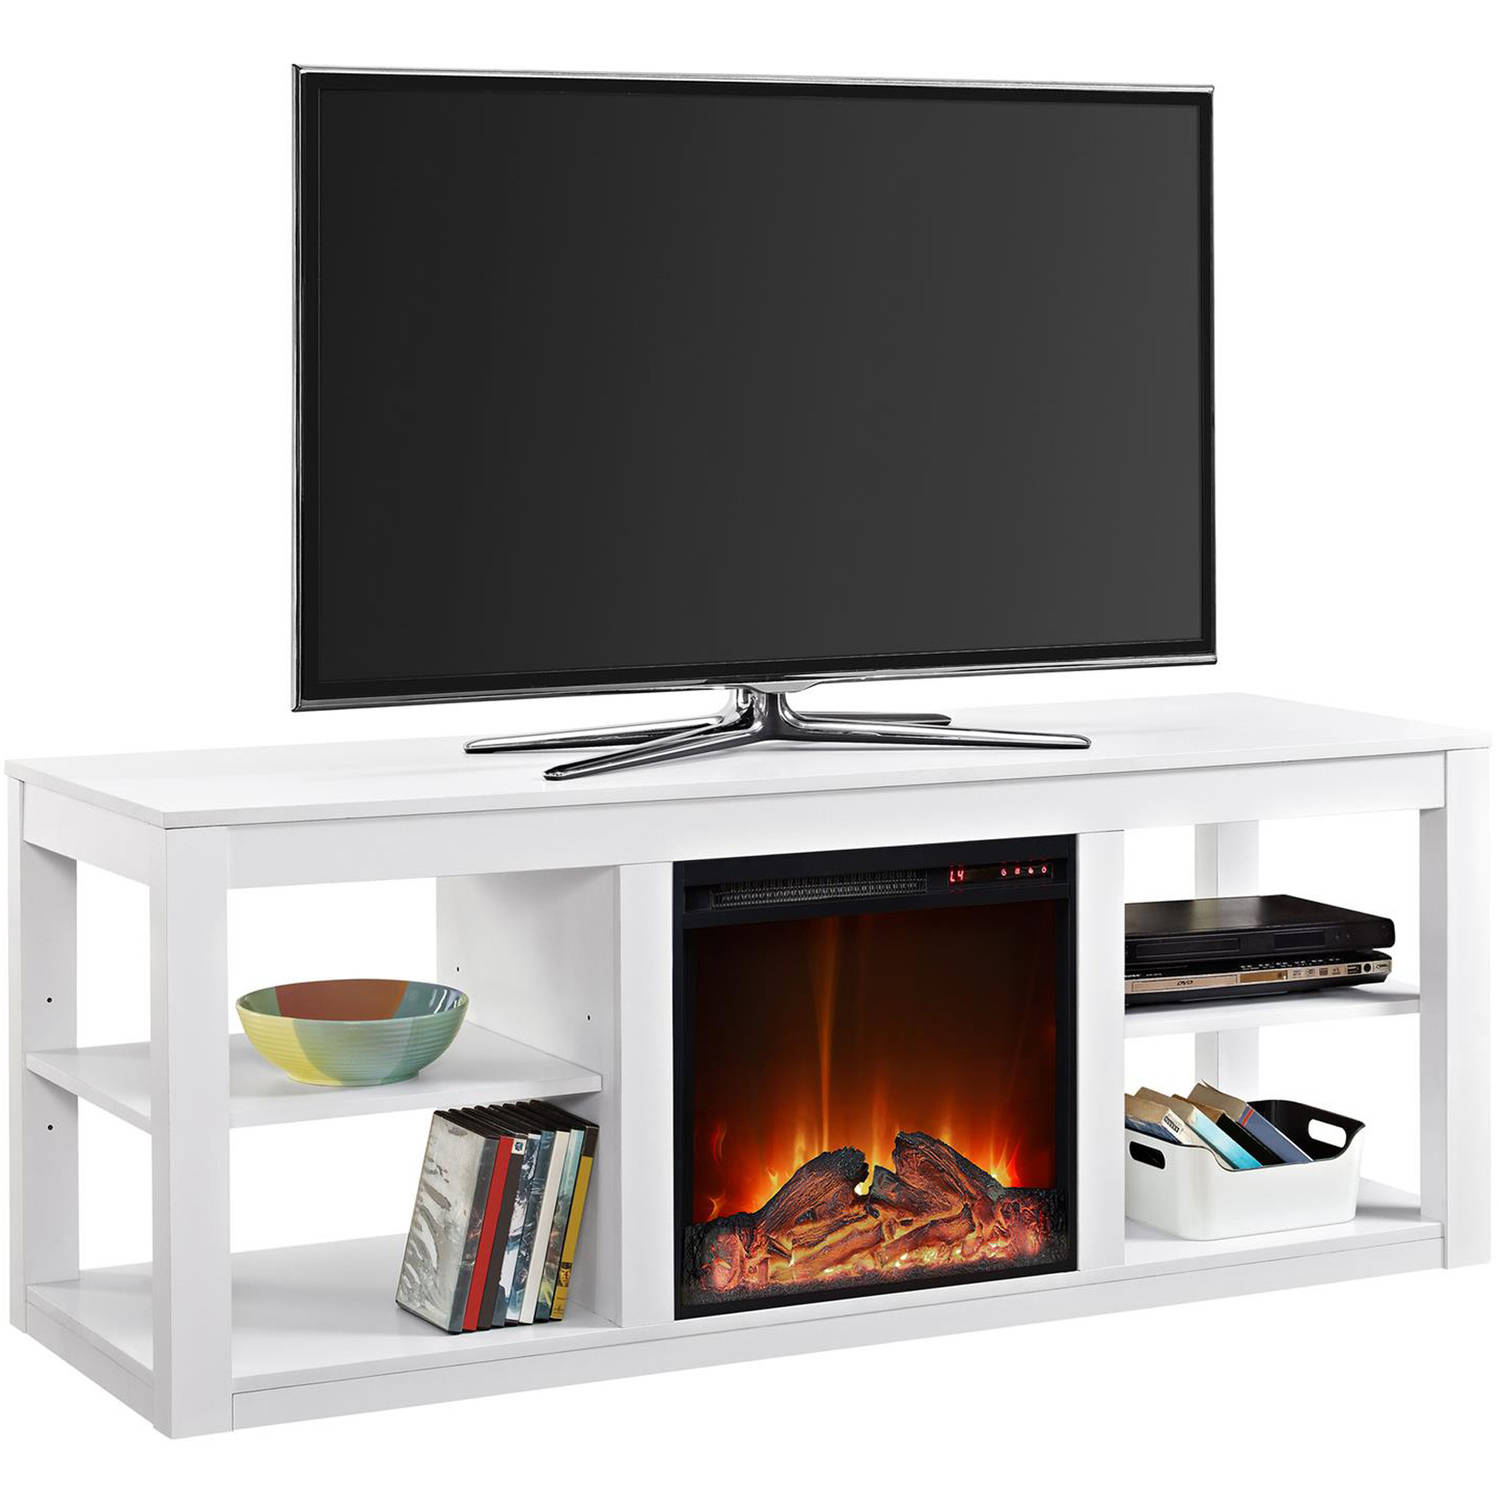 products floating geo eco mocha century woodwaves wall fireplace mount console mid tv stand modern